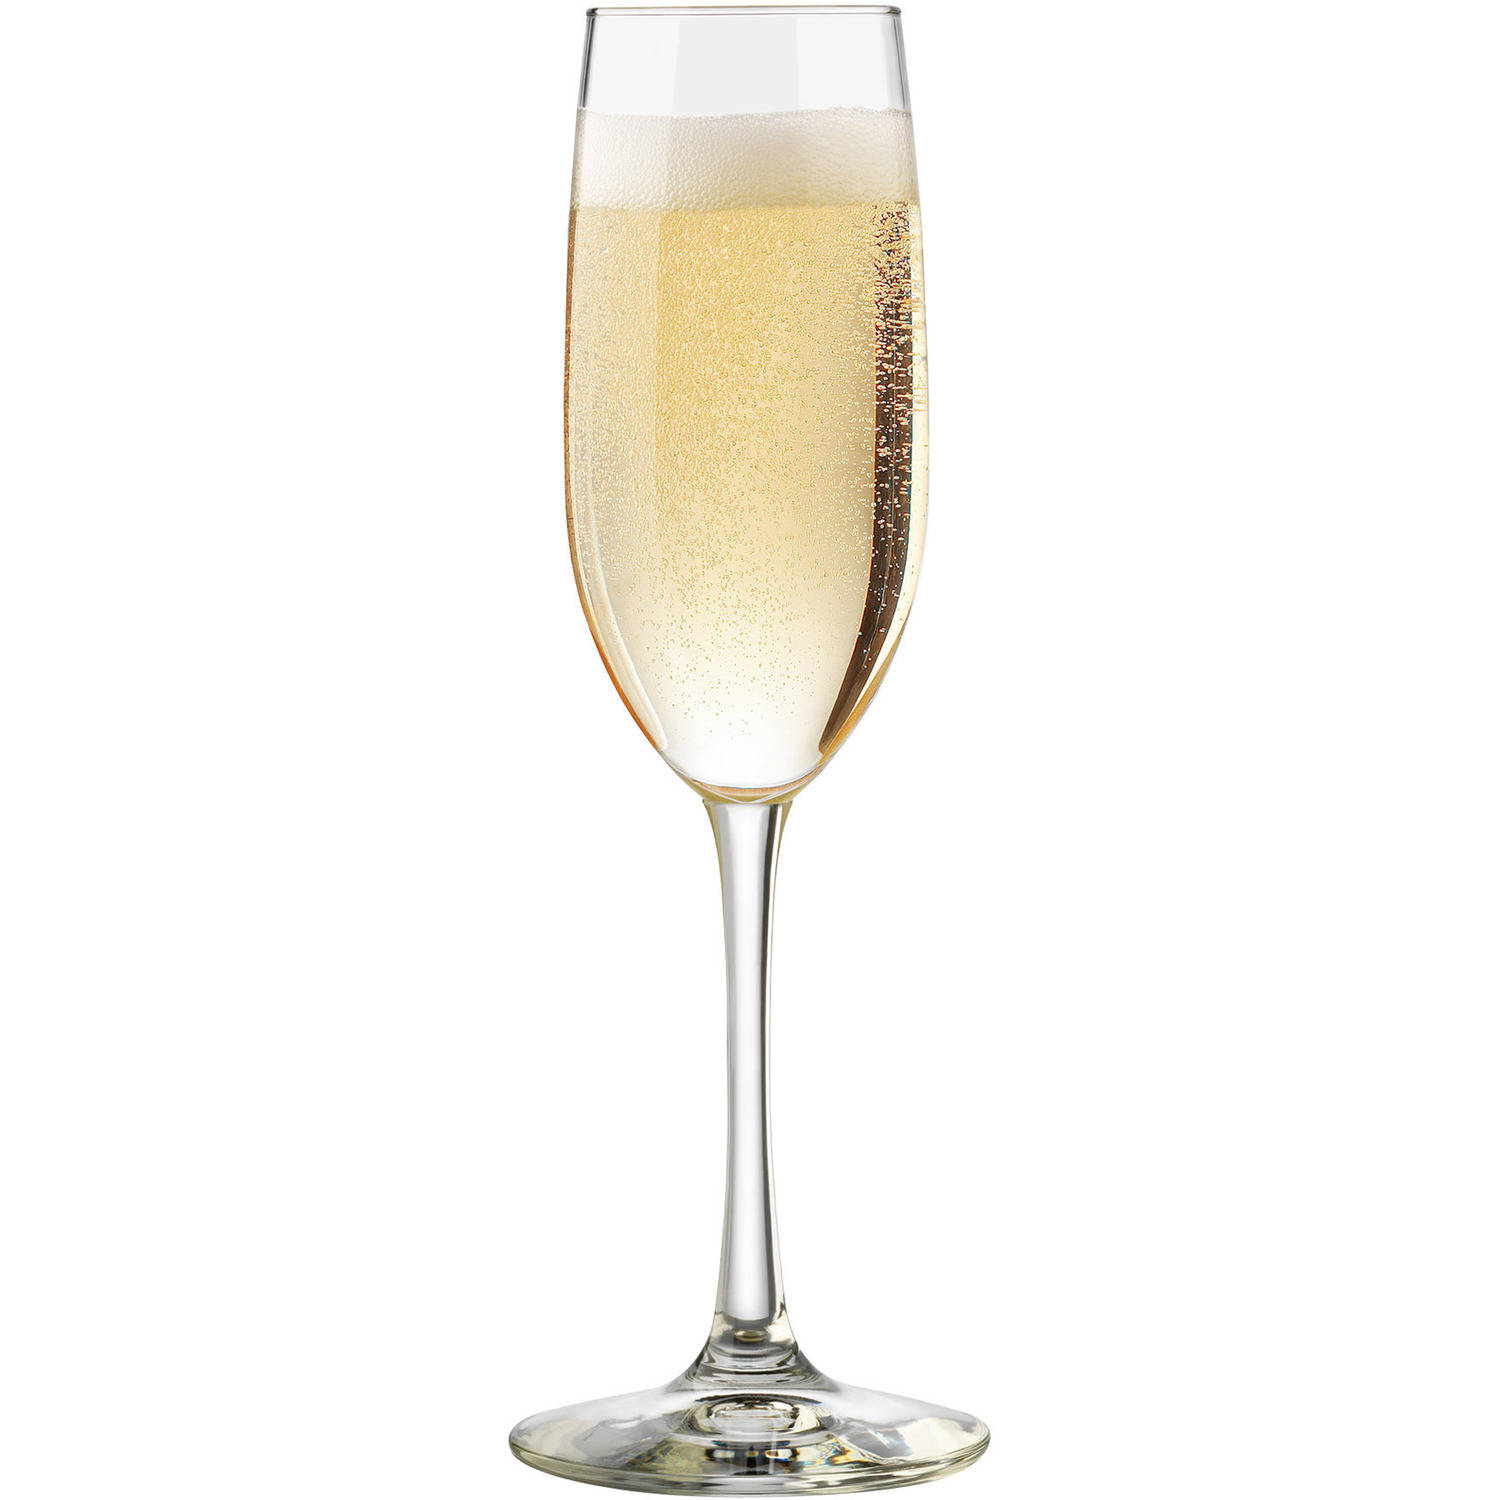 Anime Glass Wallpaper Champagne Glass Www Pixshark Com Images Galleries With